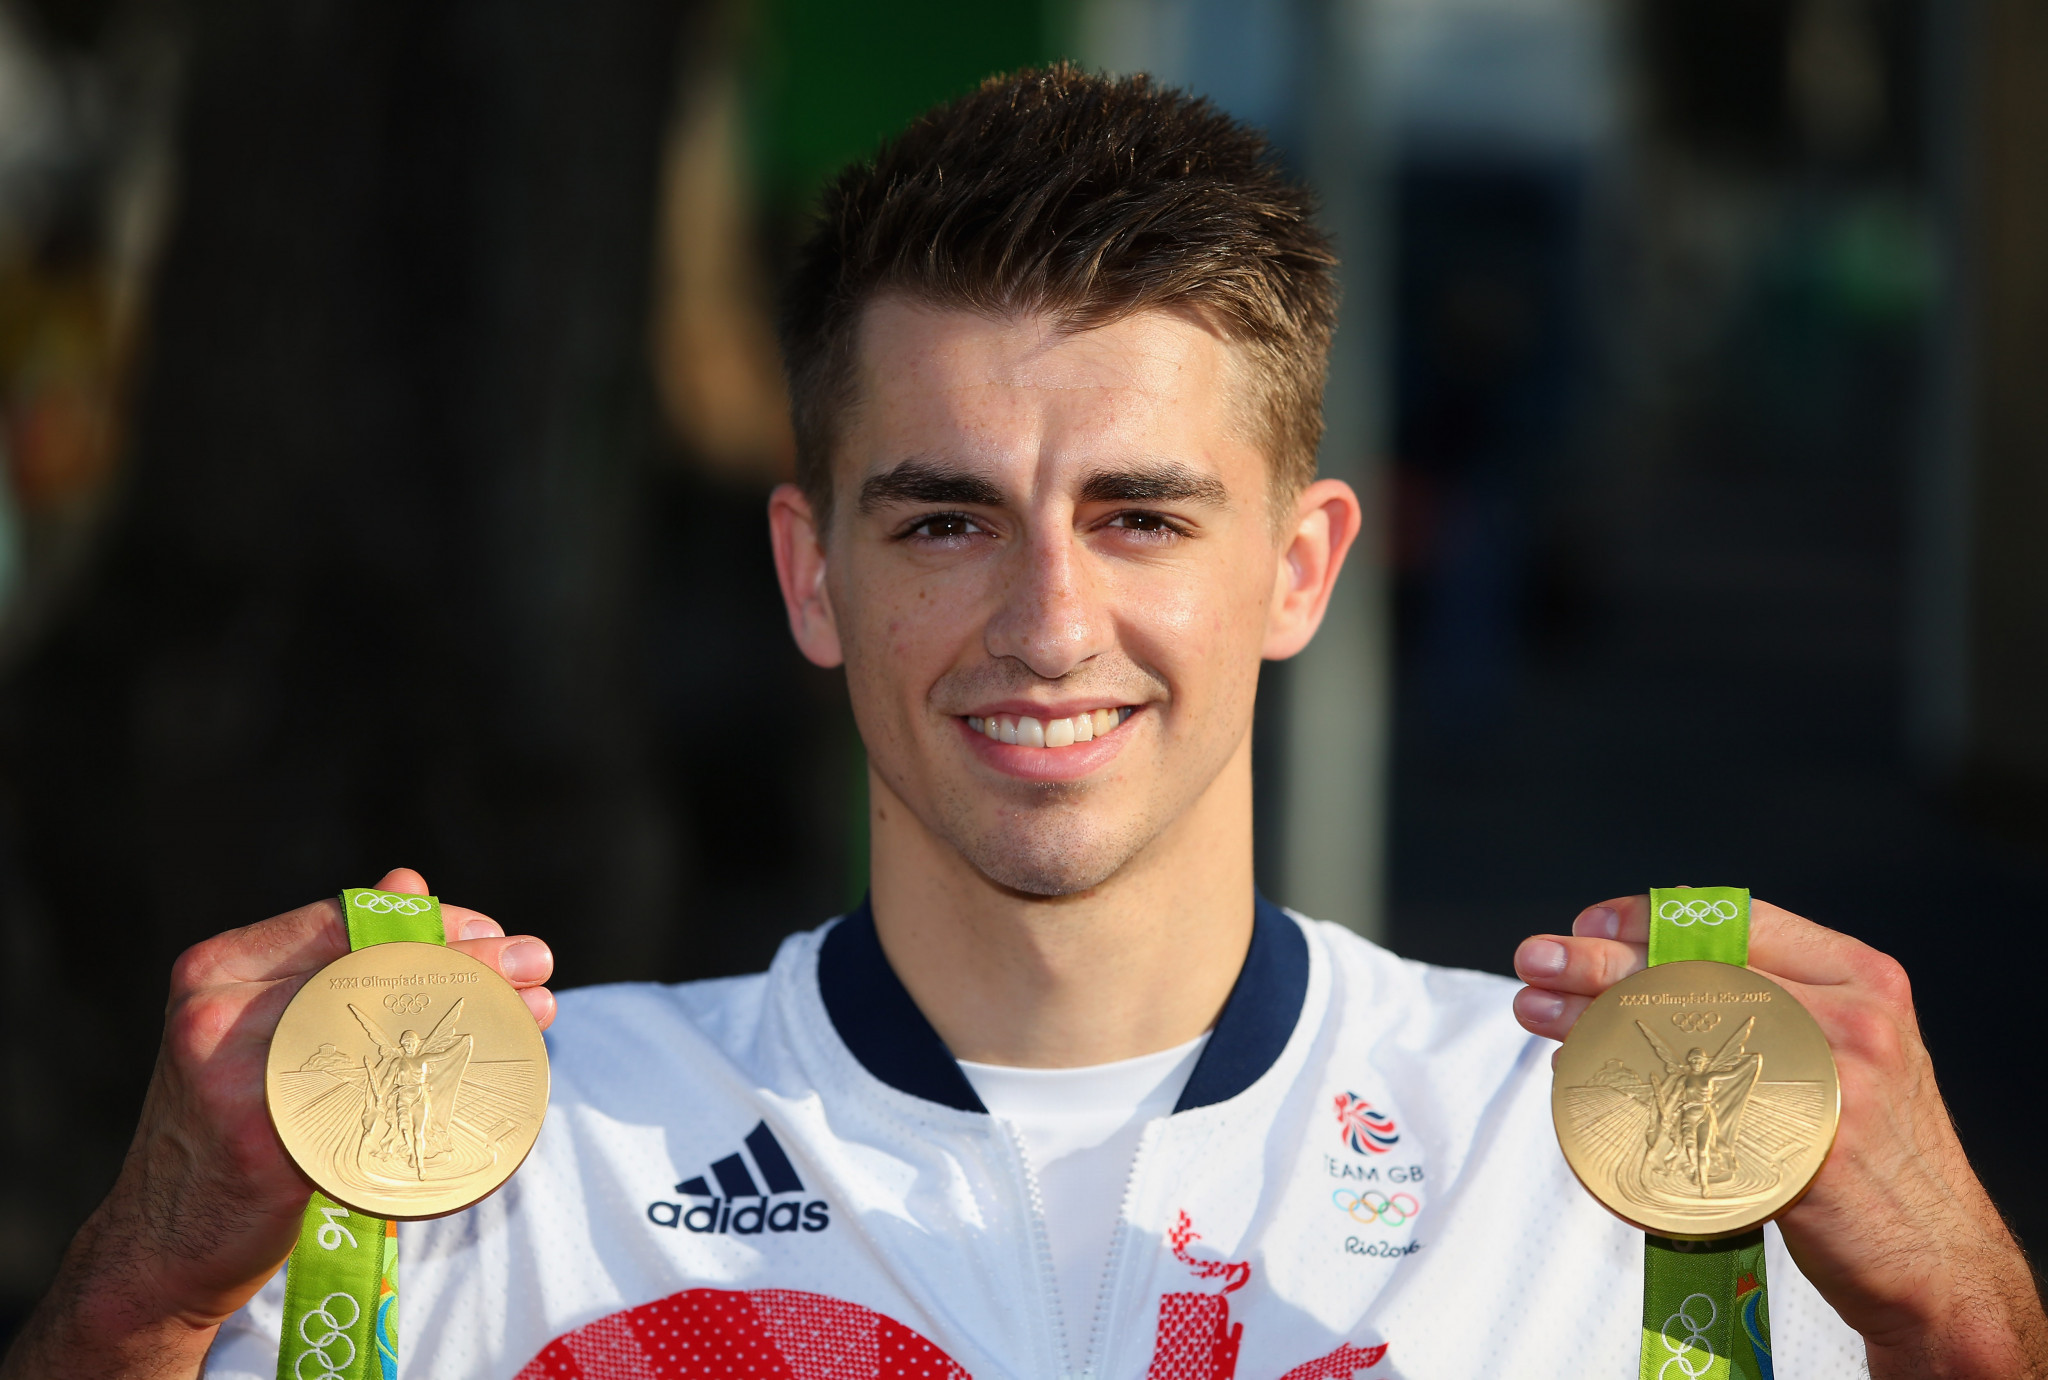 Double Olympic Champion Max Whitlock will compete at the event on March 23 2019 ©Getty Images